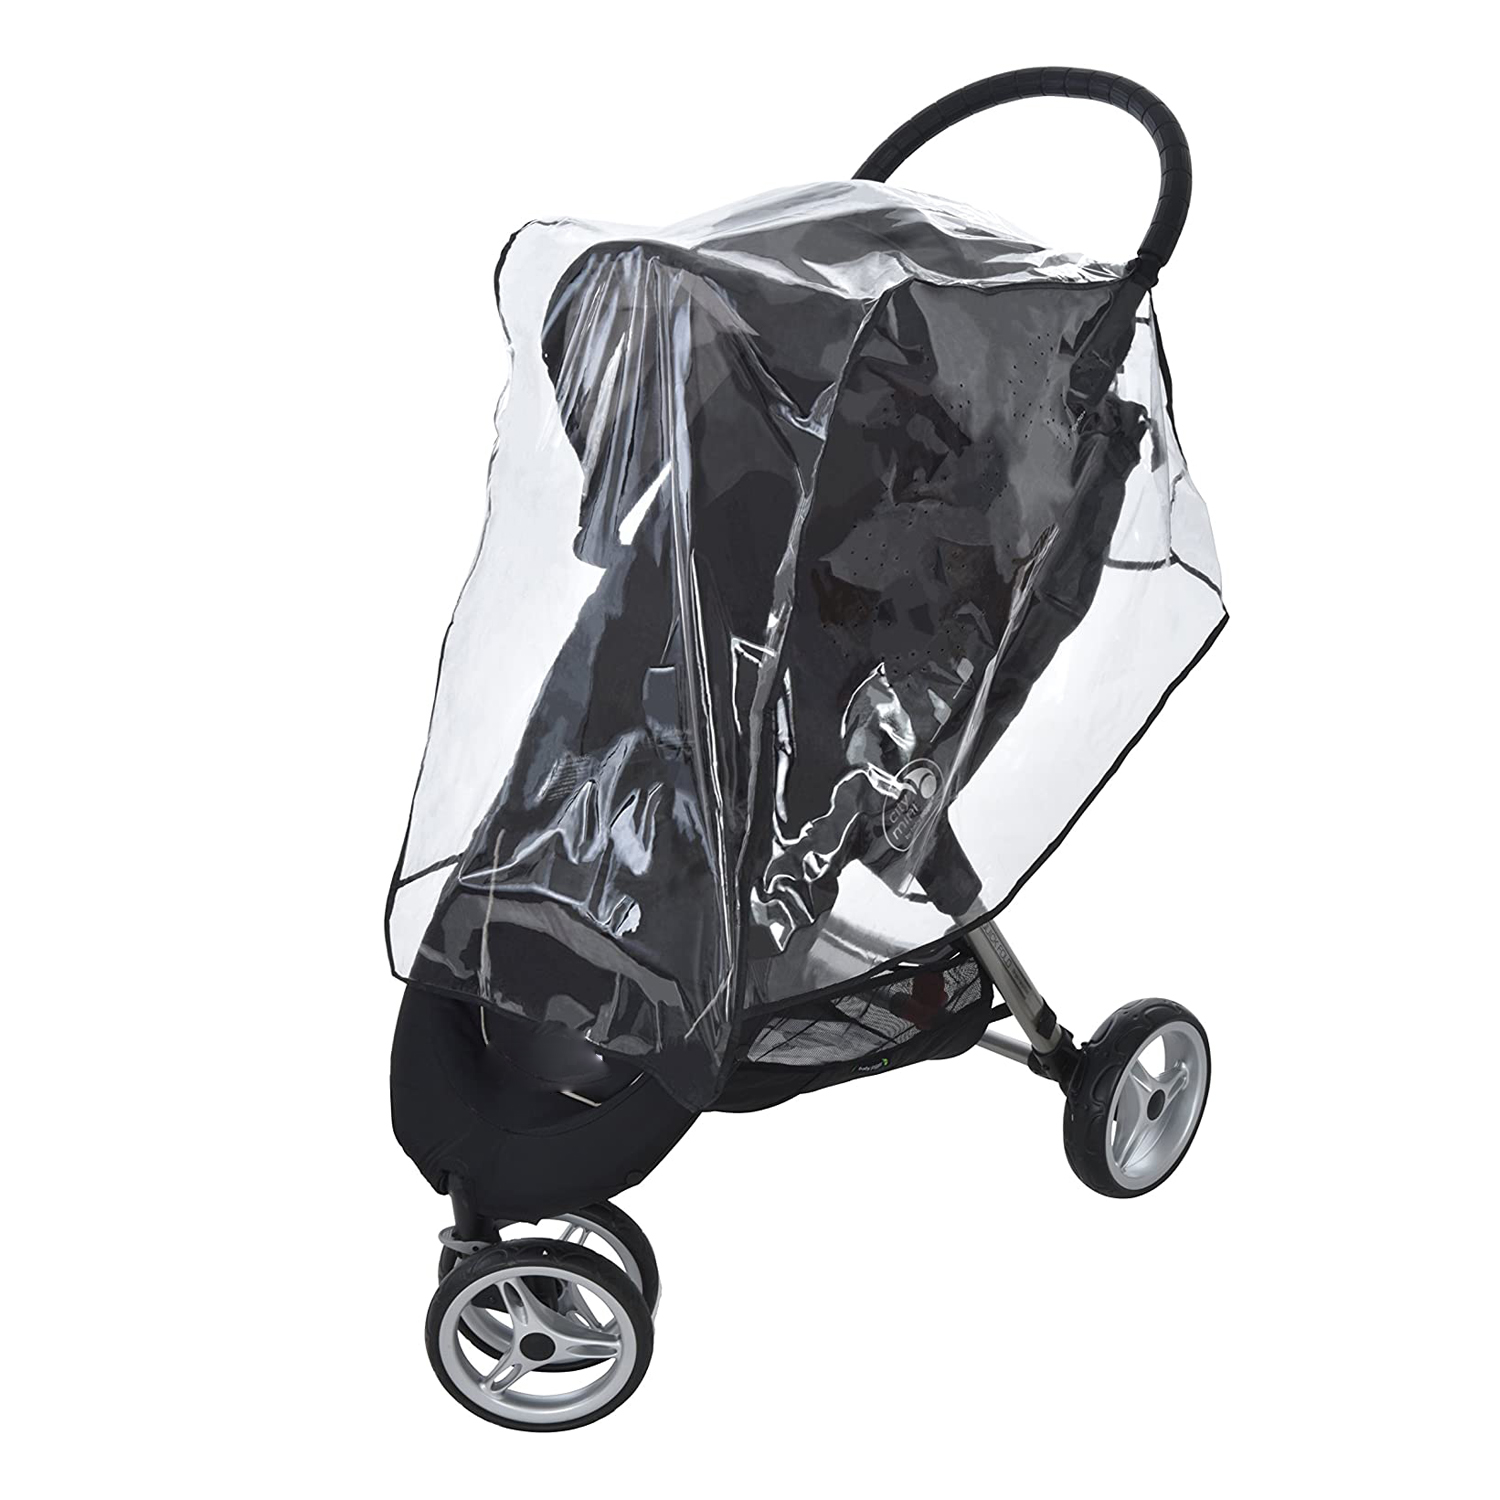 Stroller Weather Shield, Clear, One Size